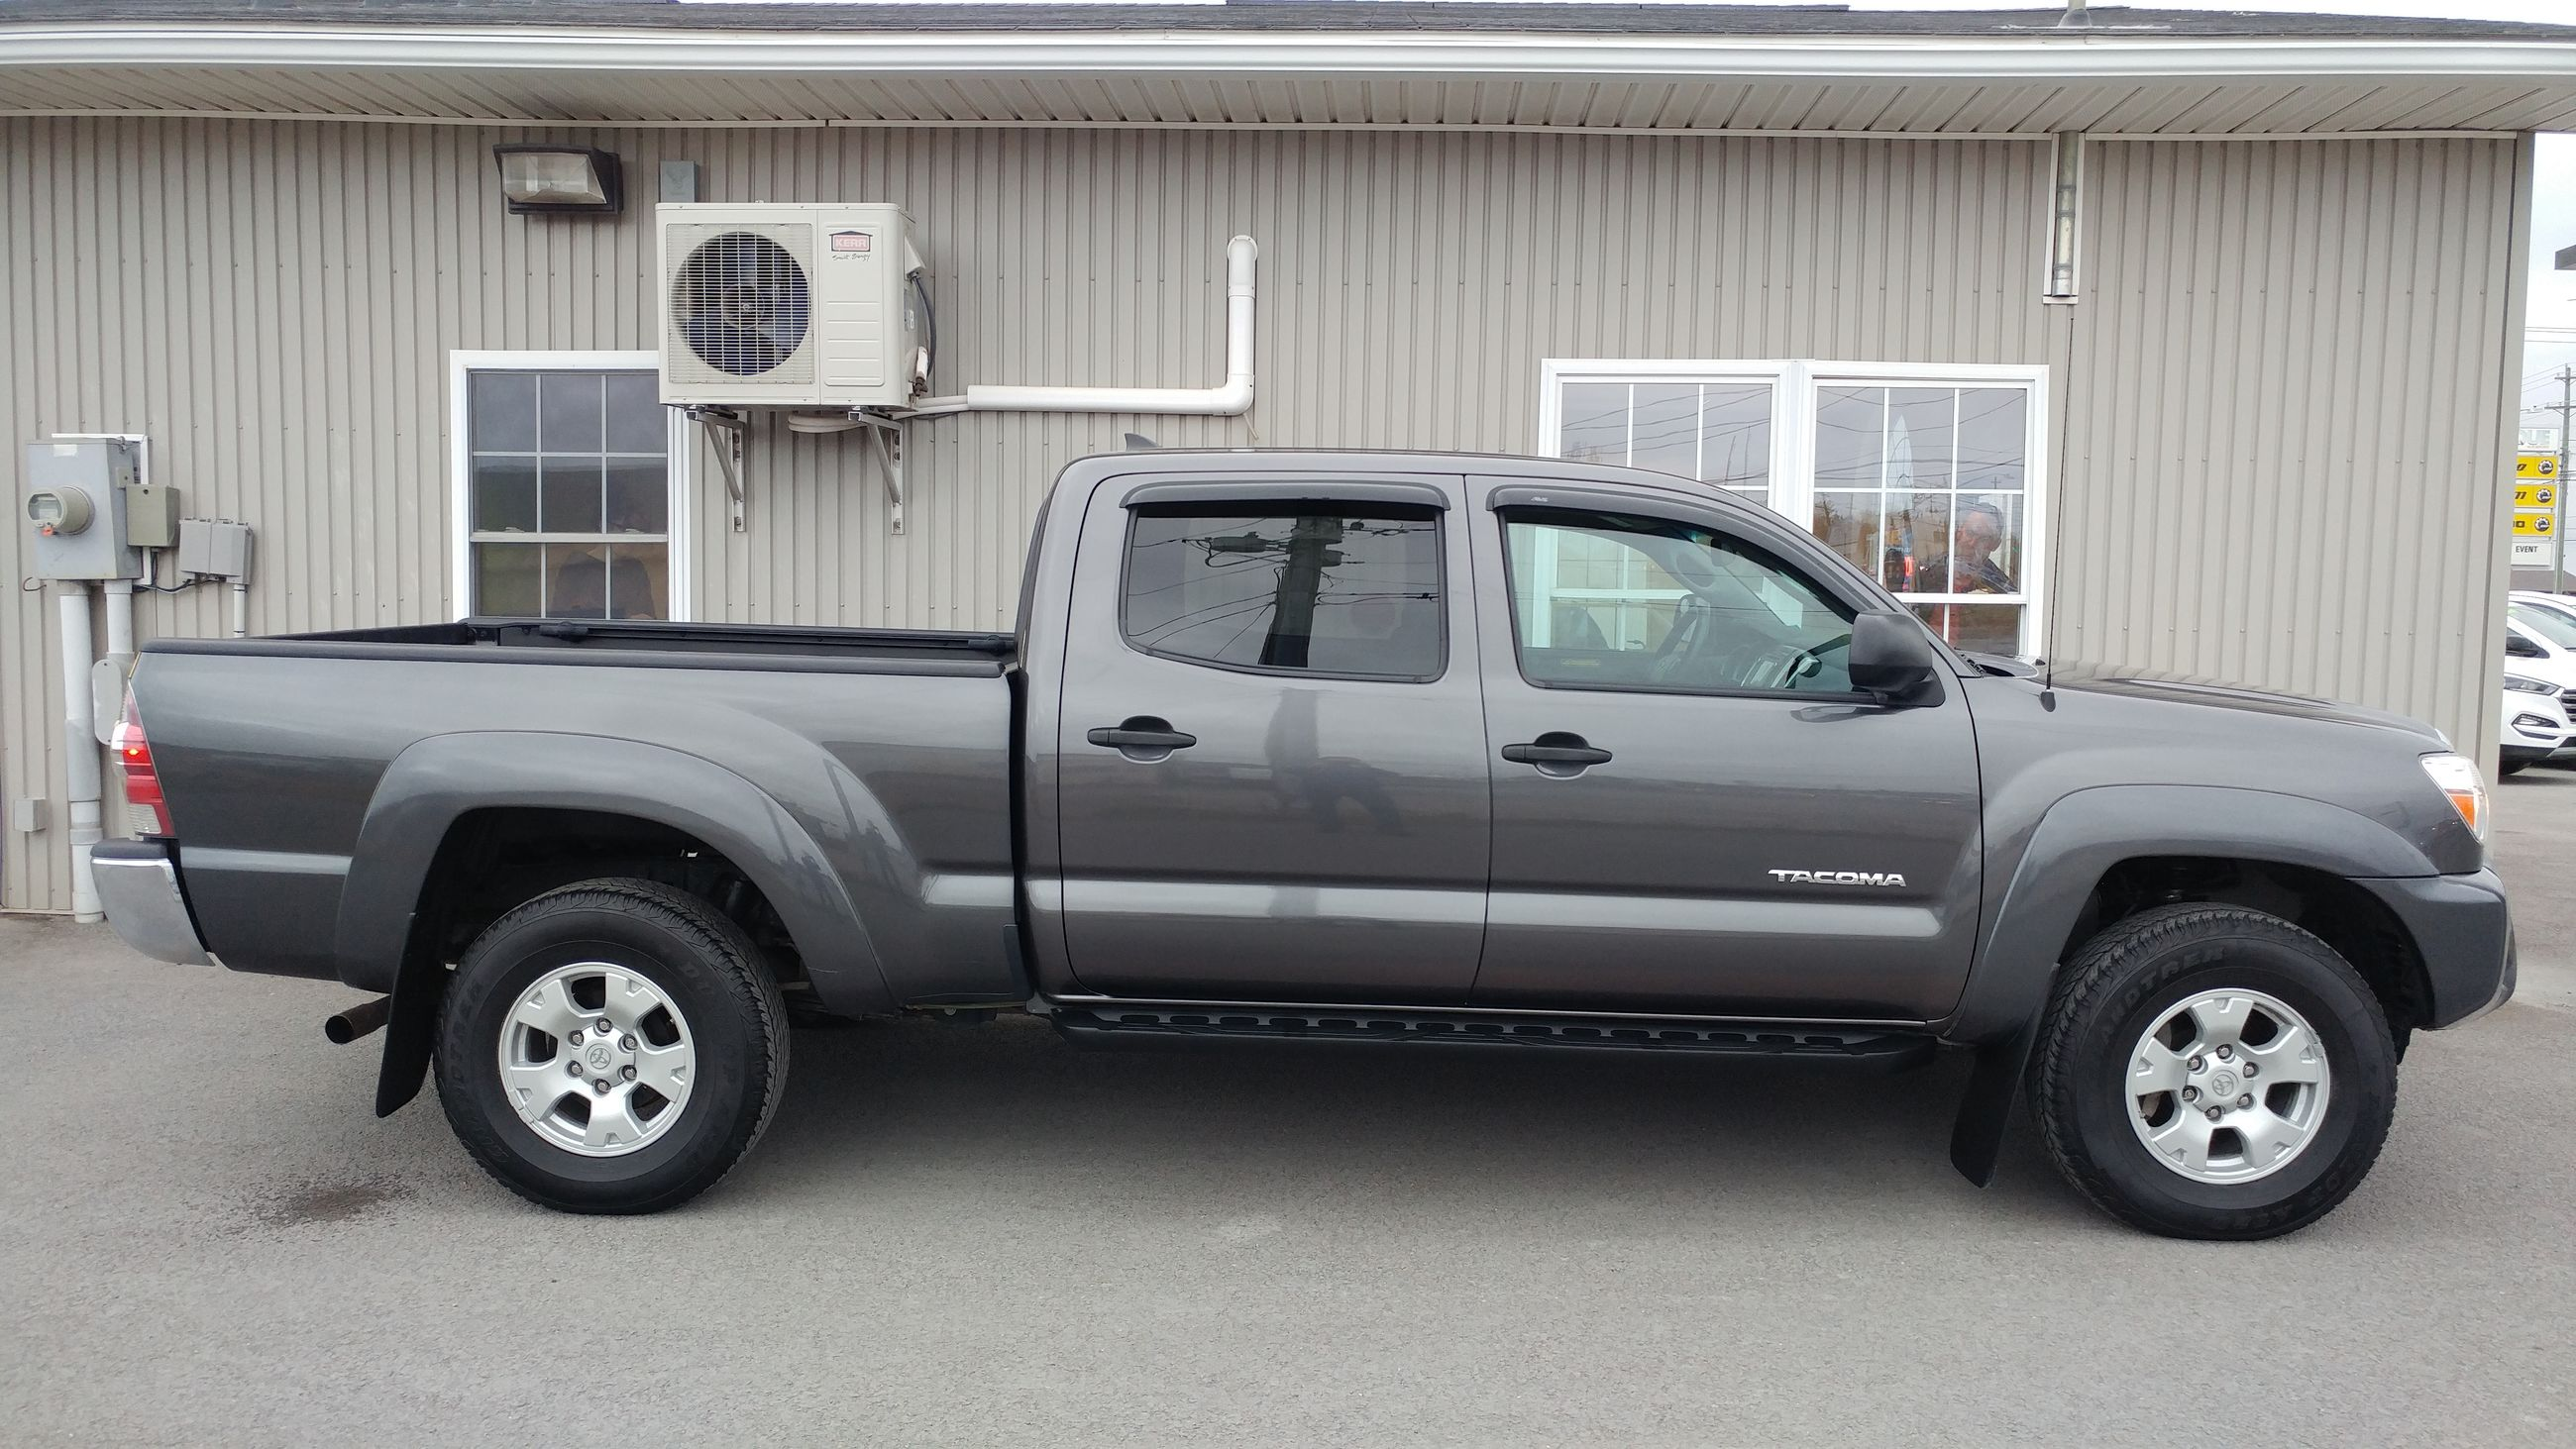 Used 2015 Toyota Ta a V6 SR5 in Fredericton Used inventory